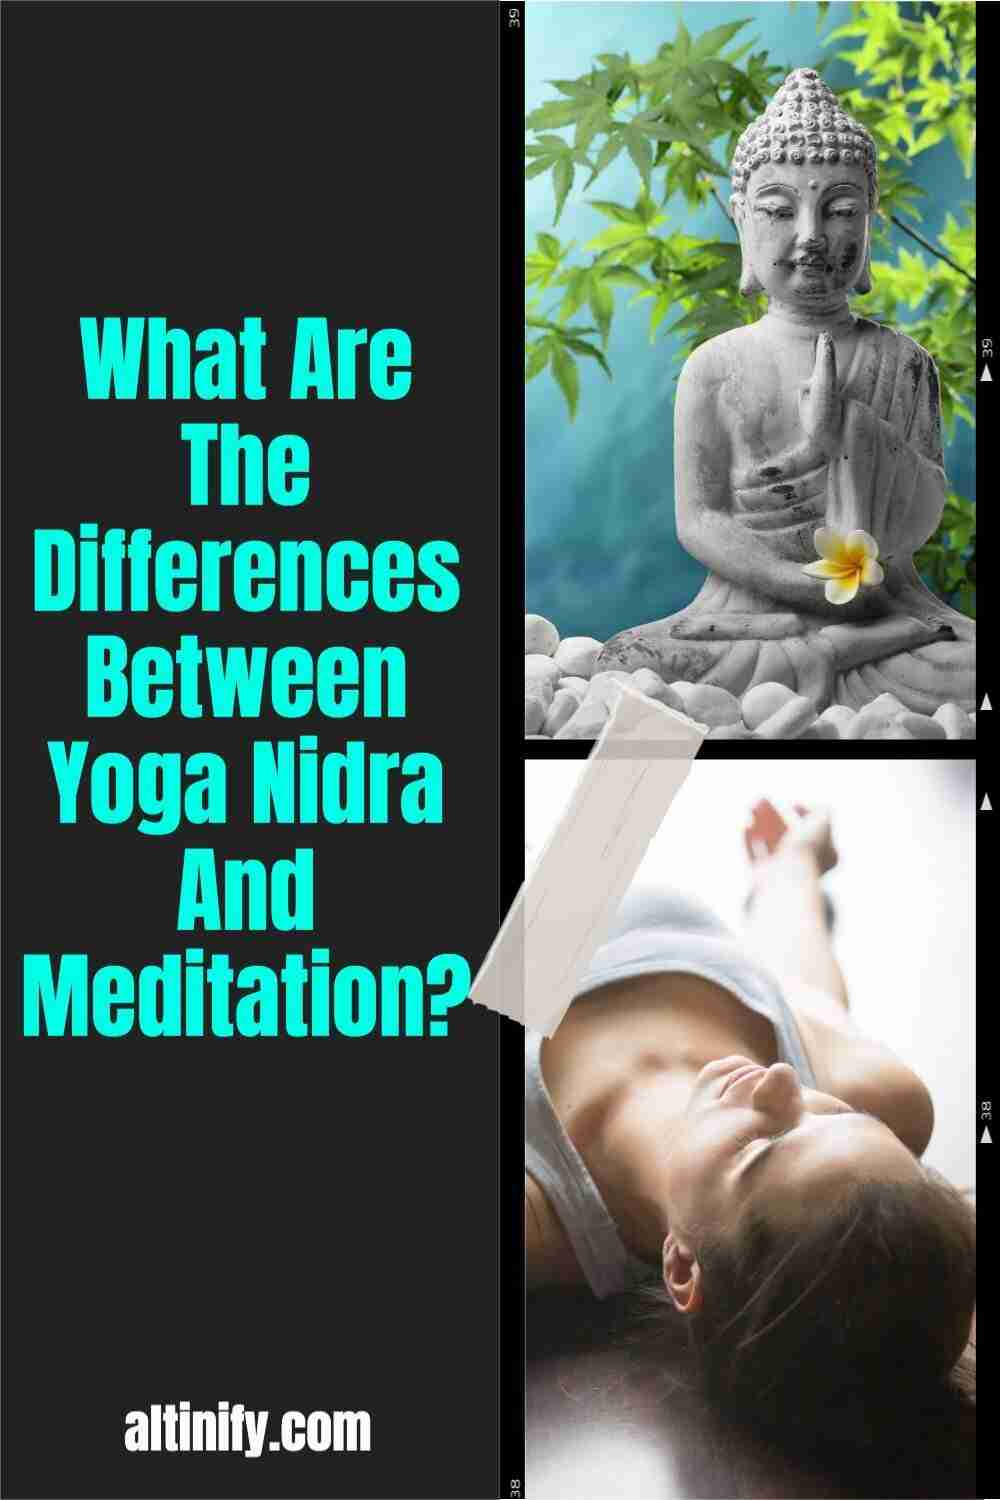 Yoga Nidra vs Meditation: What Are The Differences?